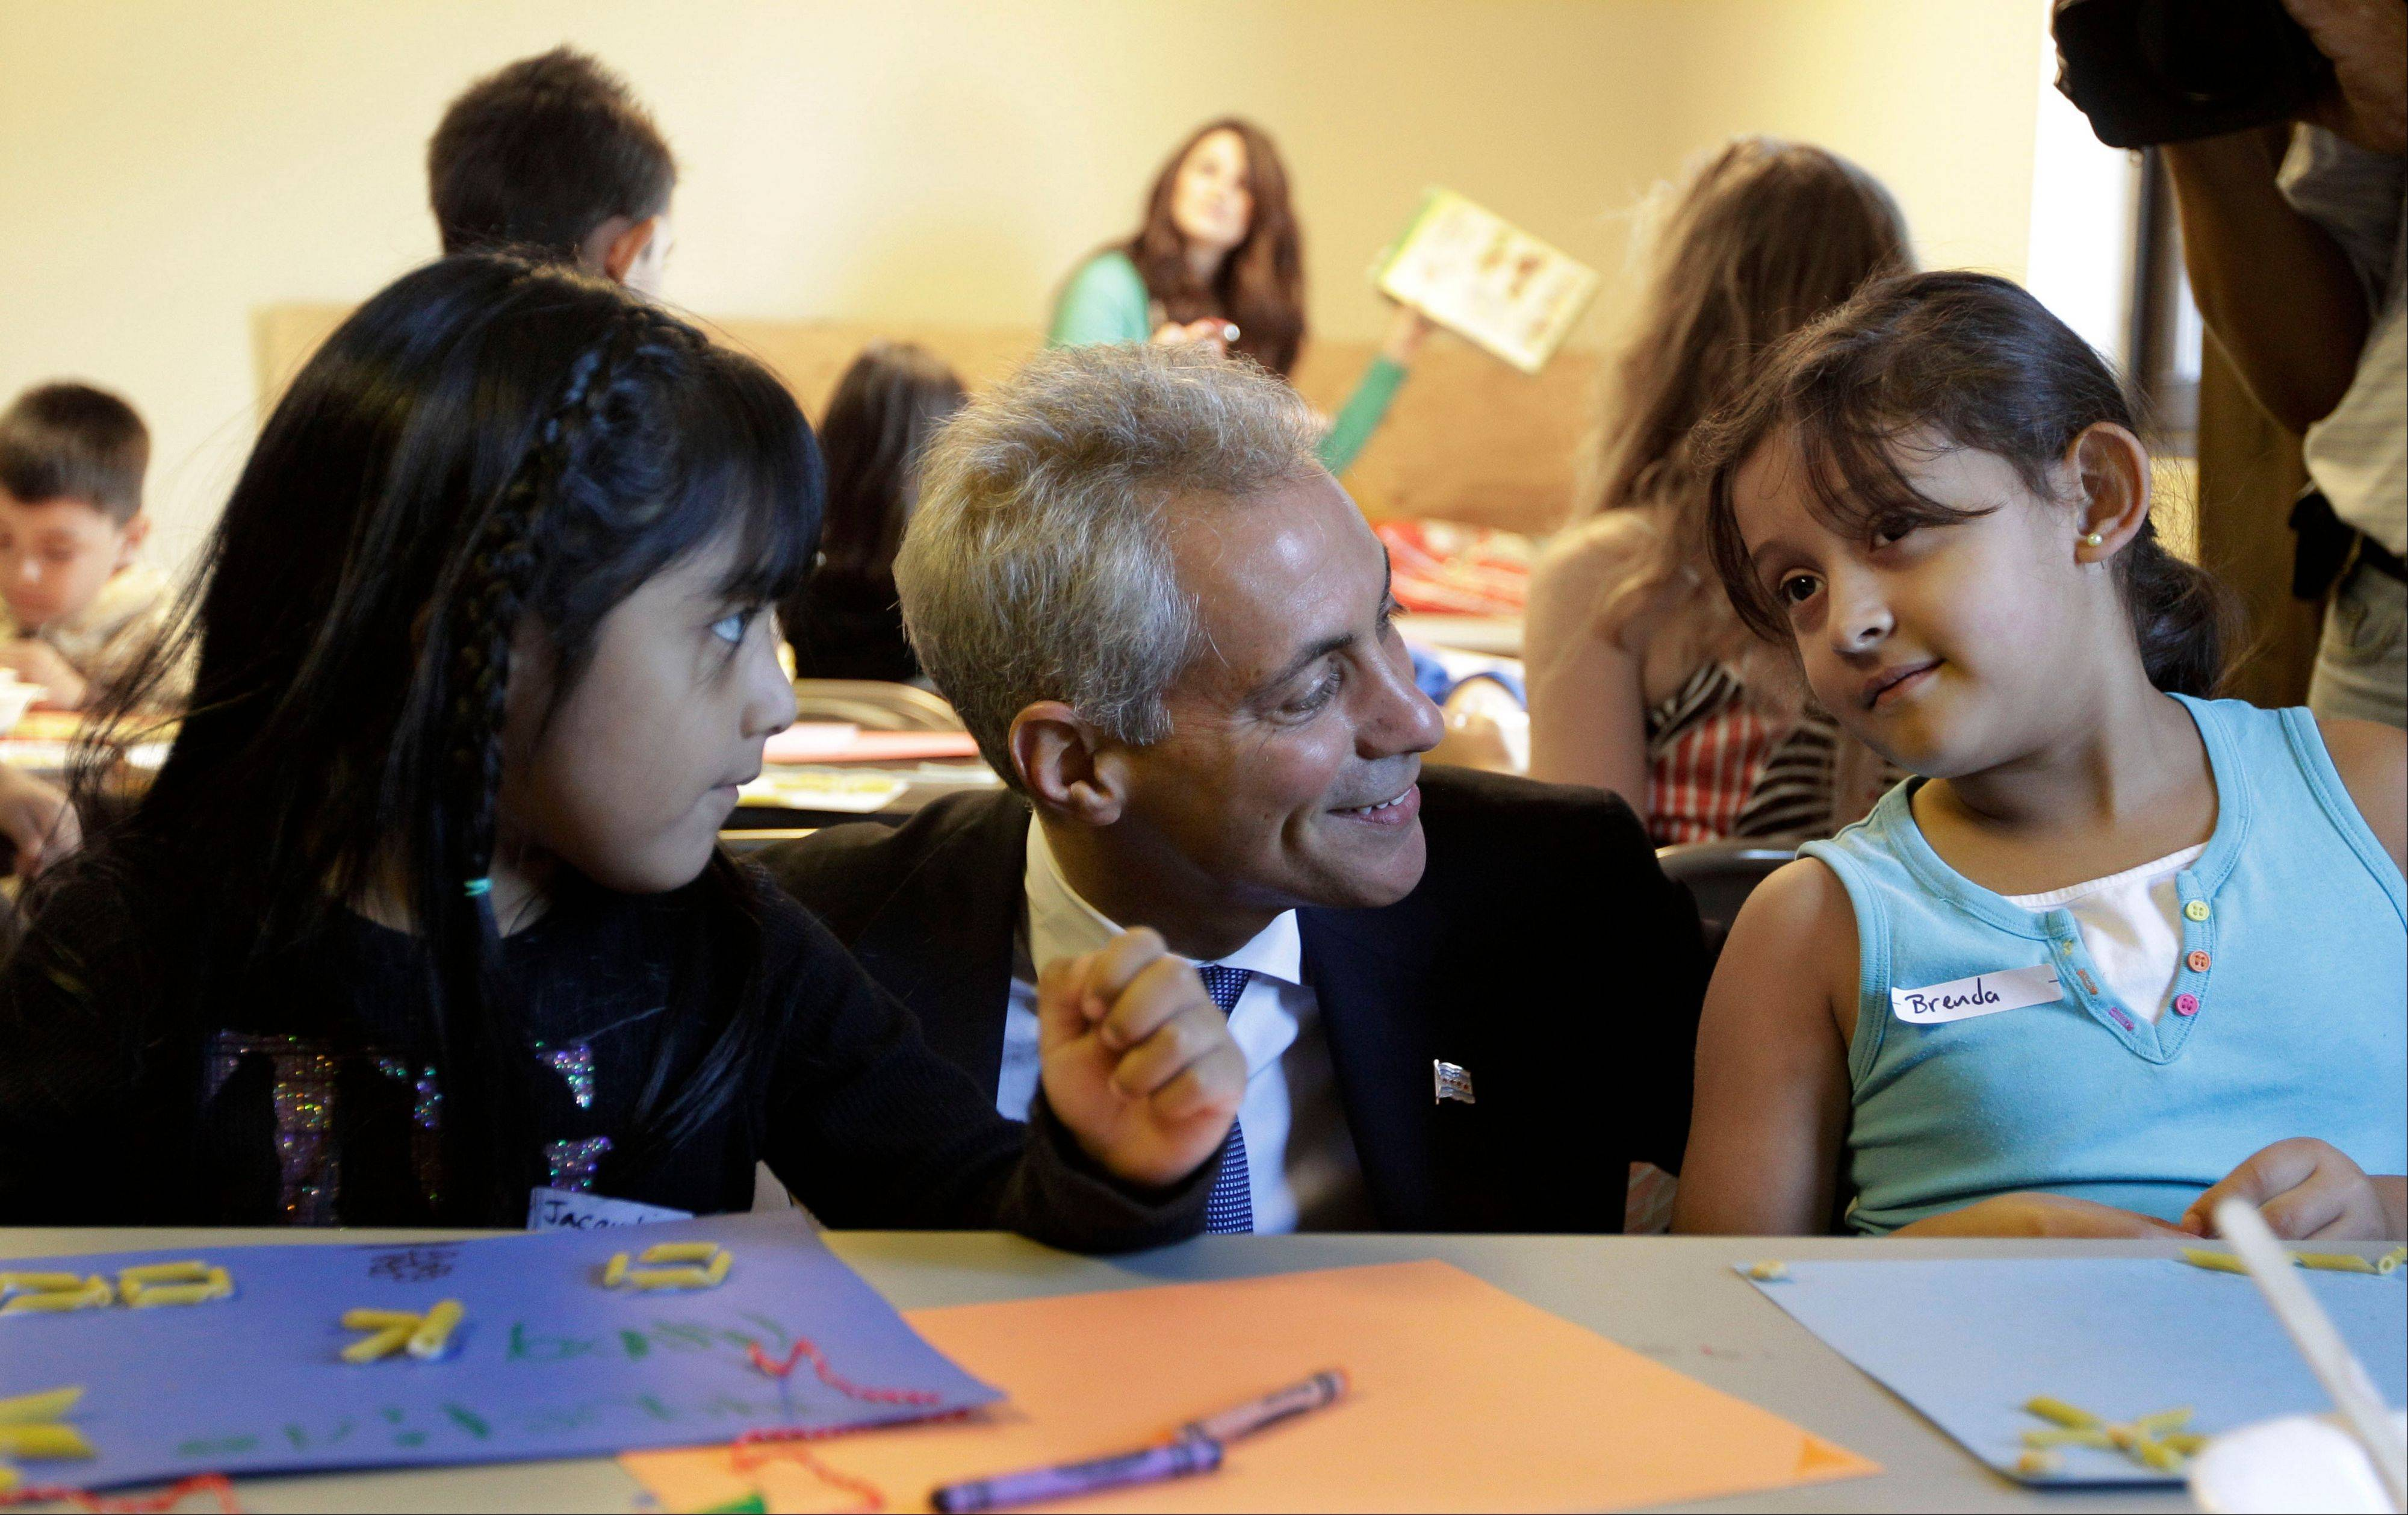 This Sept. 10, 2012, file photo shows Chicago Mayor Rahm Emanuel visiting with students at Maranatha Church in Chicago, where students were being provided structured activities during a teachers strike. Mayor Emanuel has said if the Illinois Legislature — which passed a historic measure last week to address the stateís worst-in-the-nation public pension shortfall — doesn't deal with Chicago's own multibillion-dollar pension problem next, city services could suffer in the future, with more teachers losing their jobs.